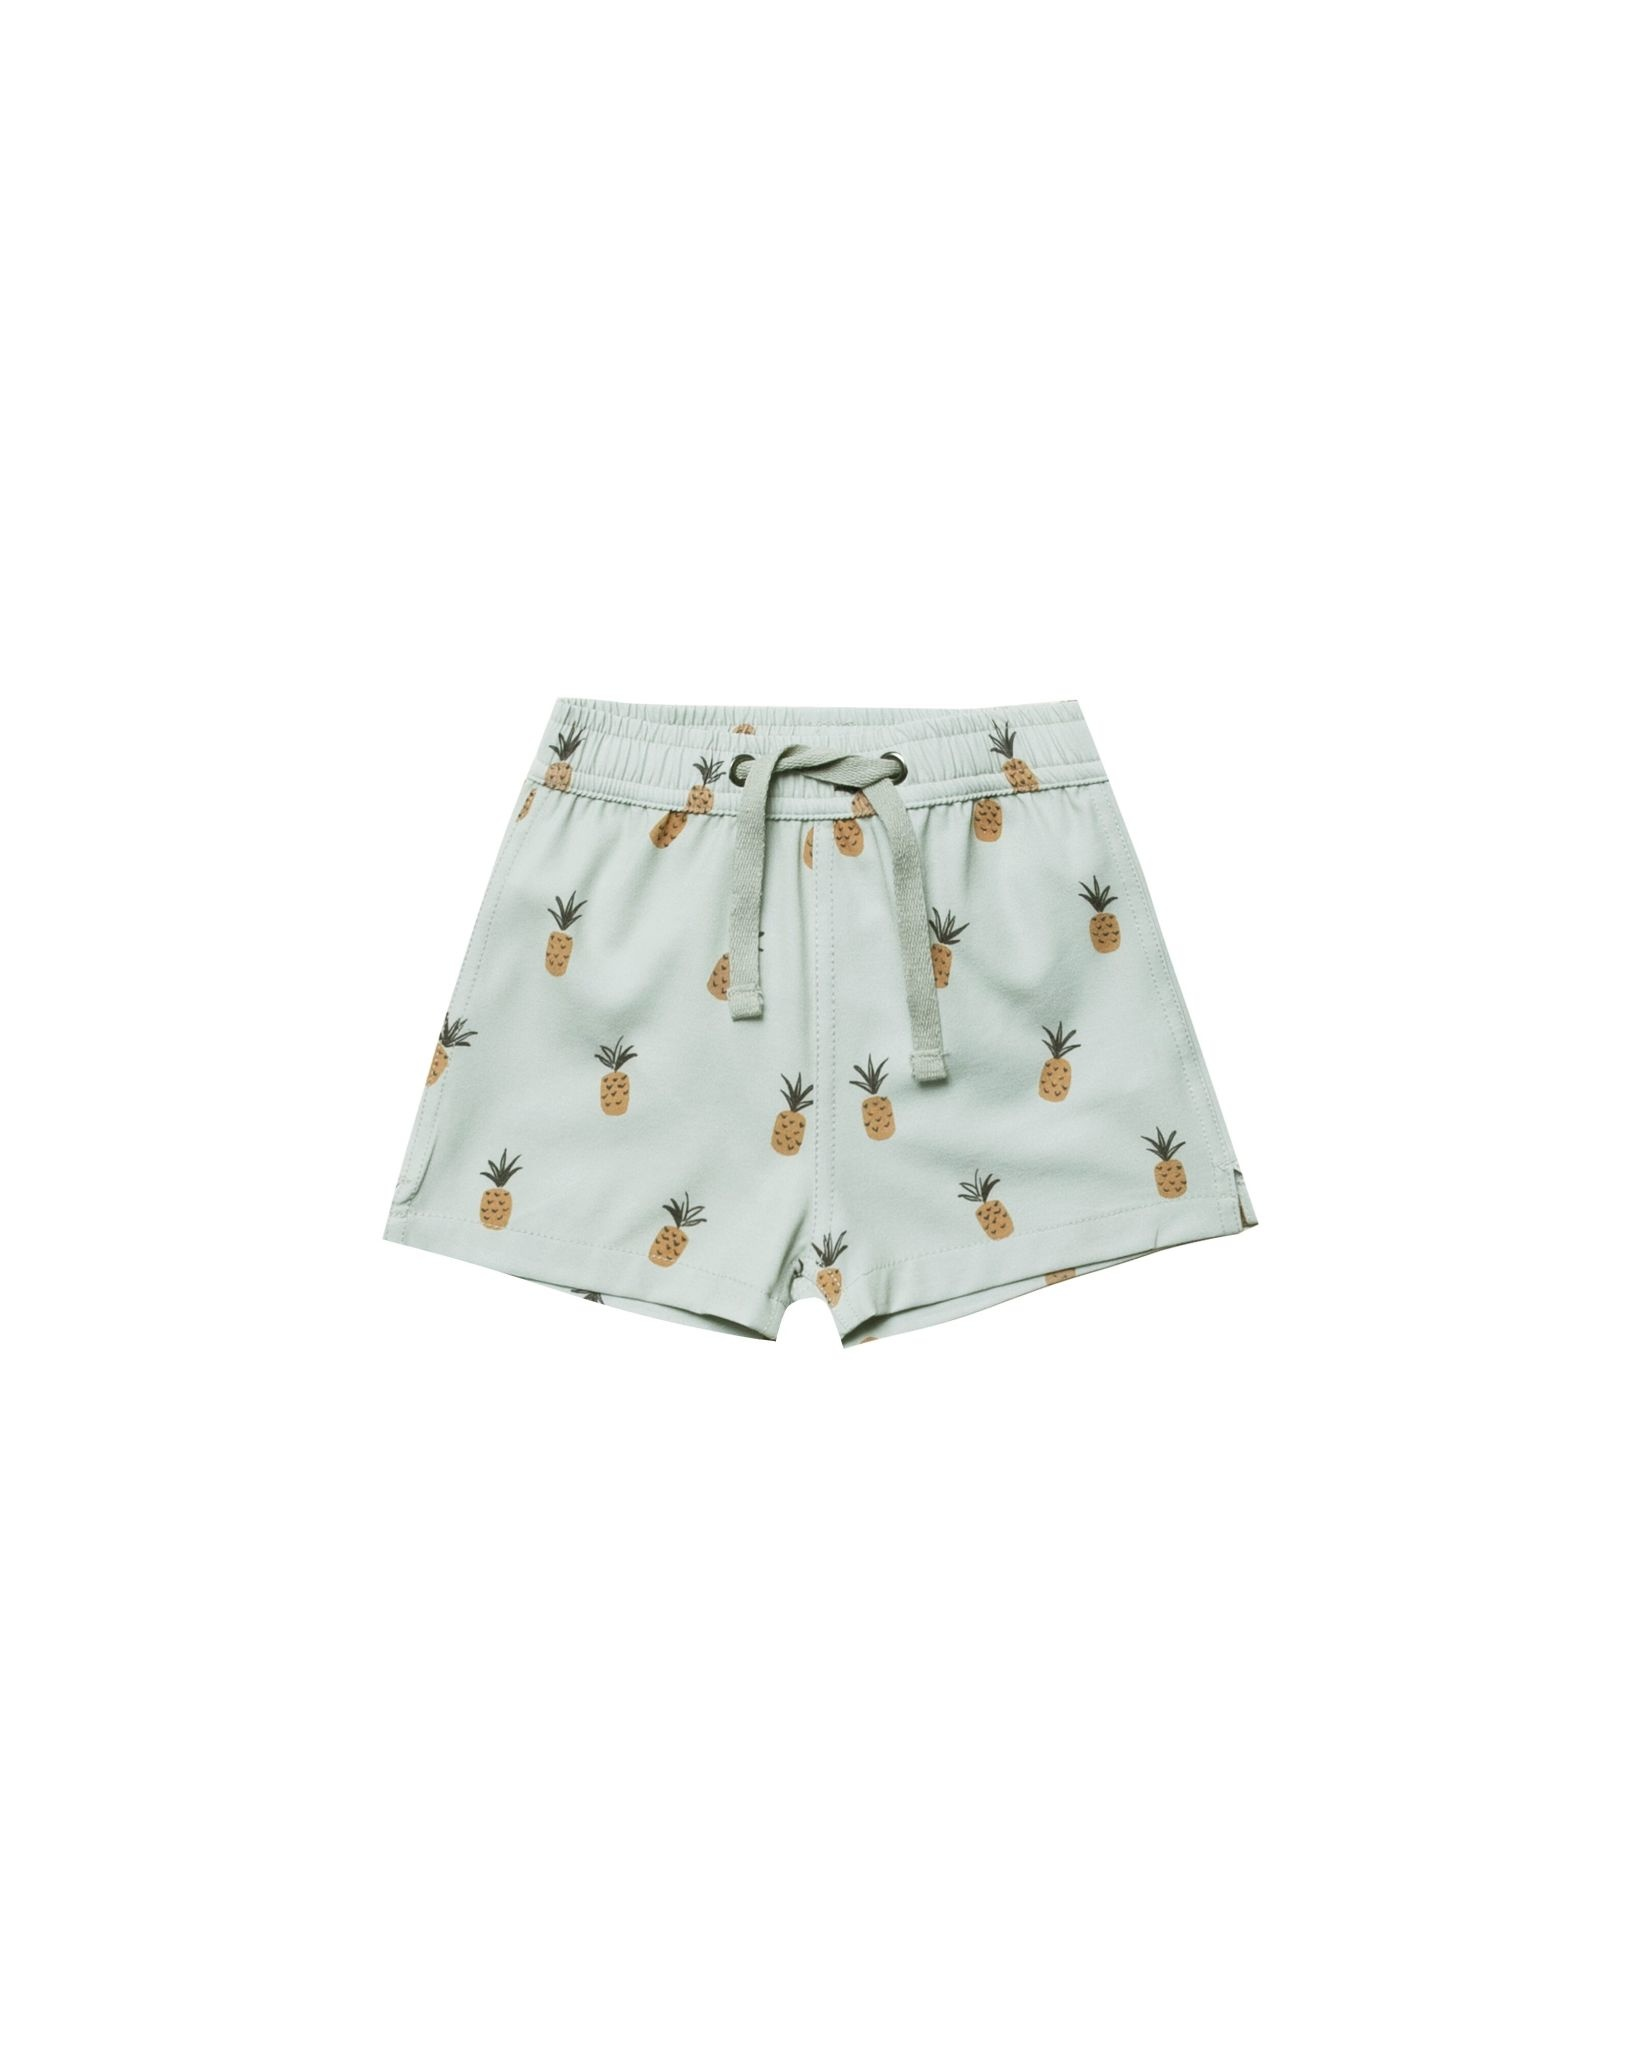 RYLEE AND CRU Pineapples Swim Trunk